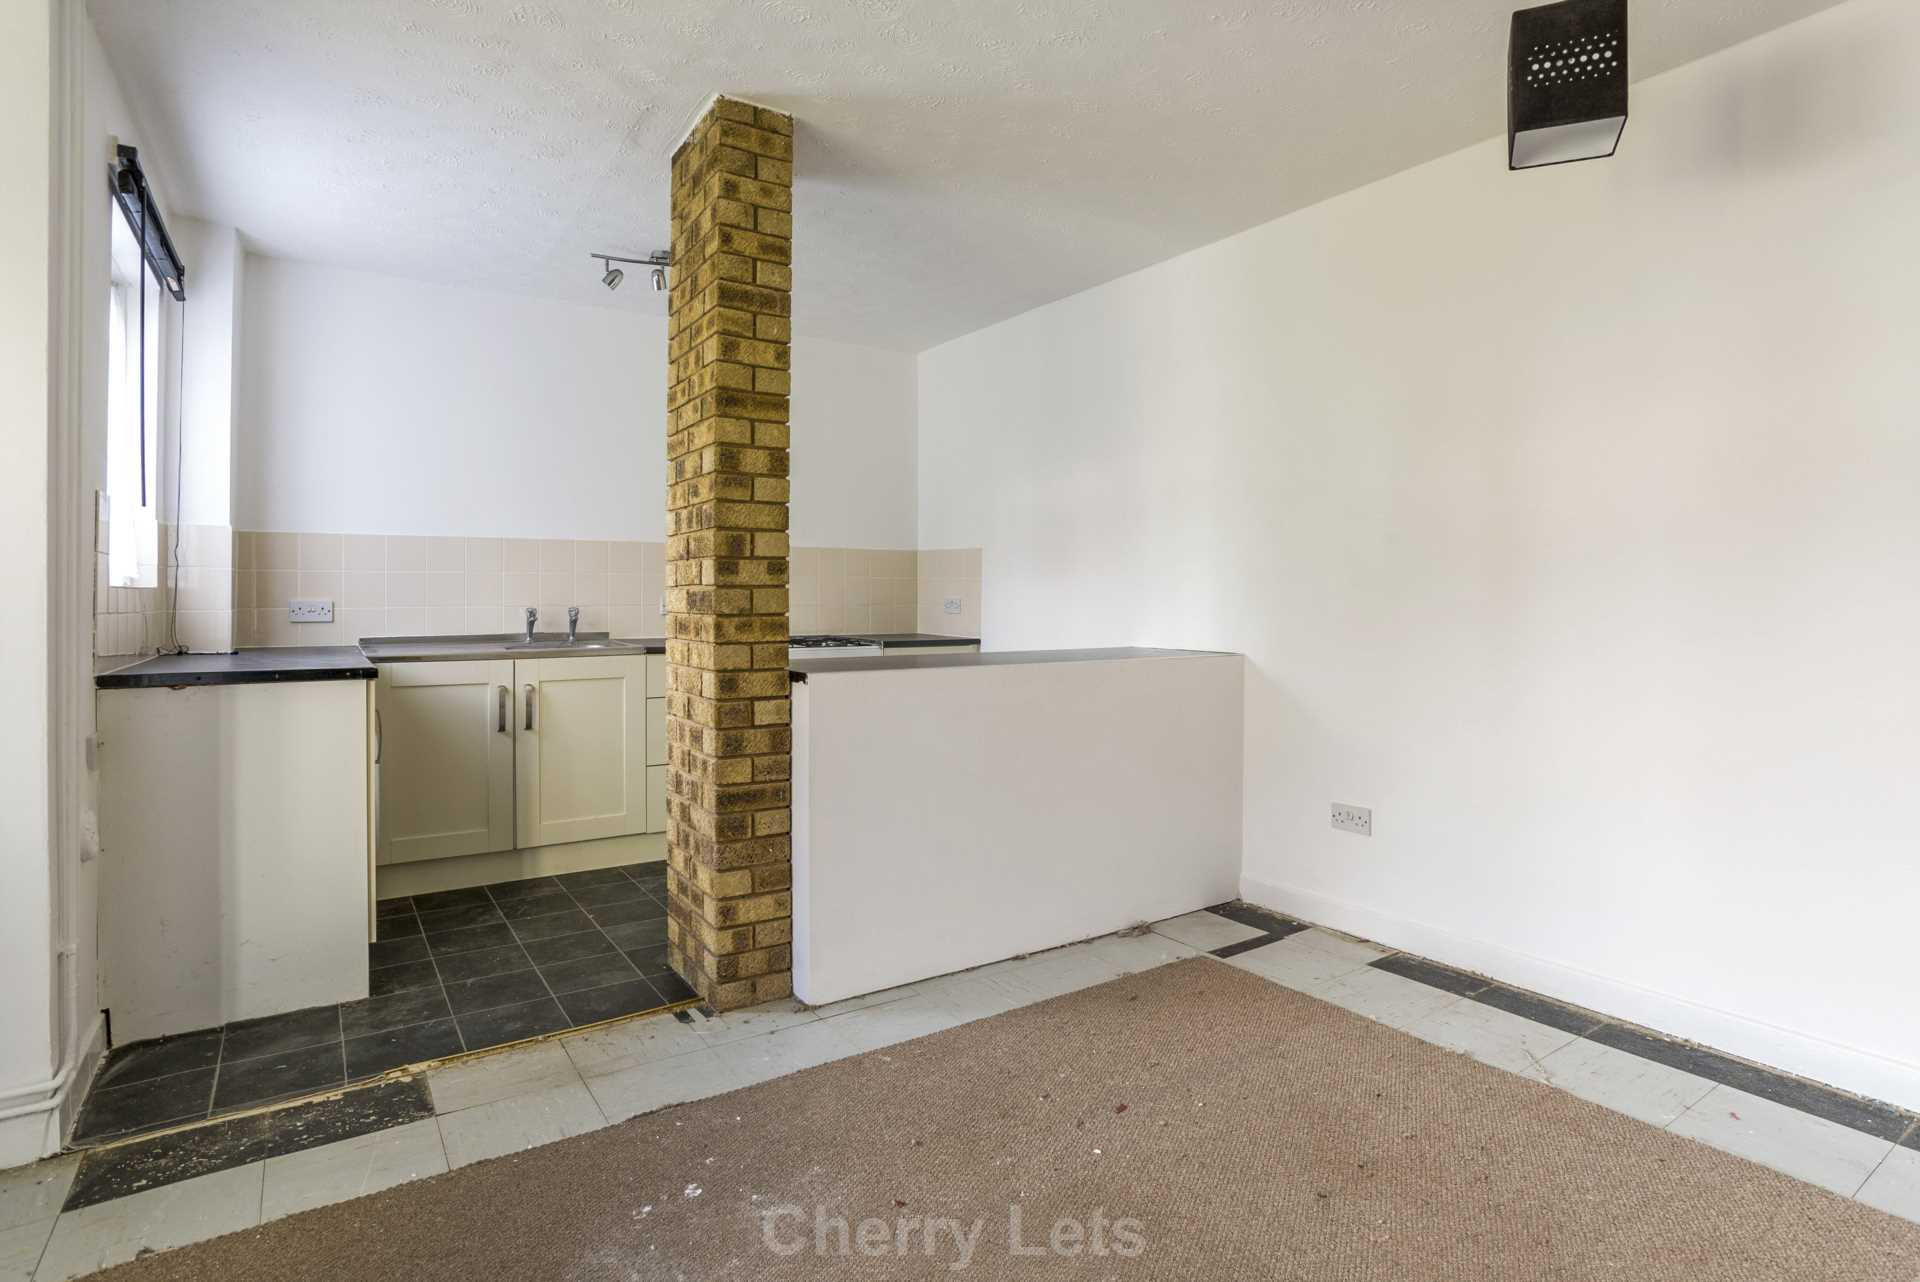 1 bed end of terrace house to rent in Bedford Close, Banbury, OX16 4